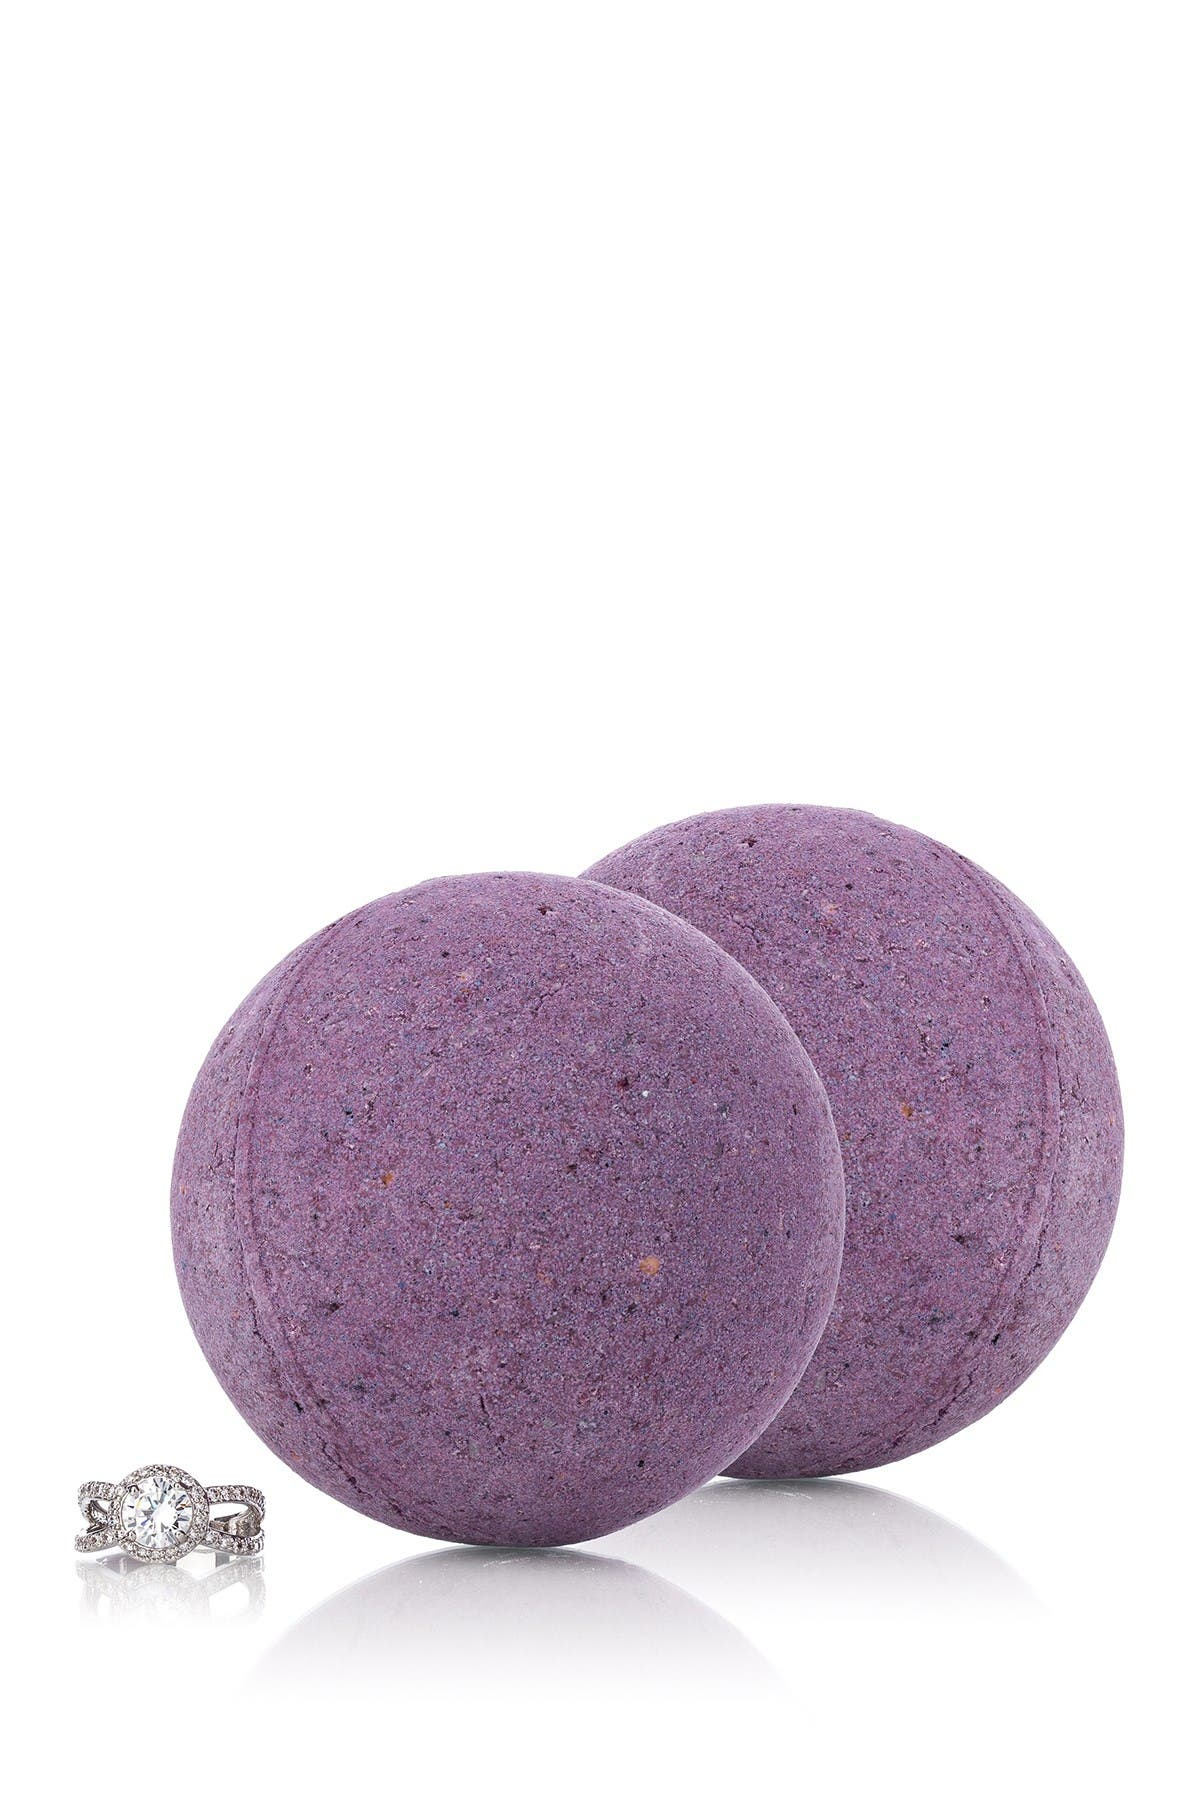 Image of Pearl Bath Bombs Love Potion Bath Bomb with Luxury Ring Surprise - Set of 2